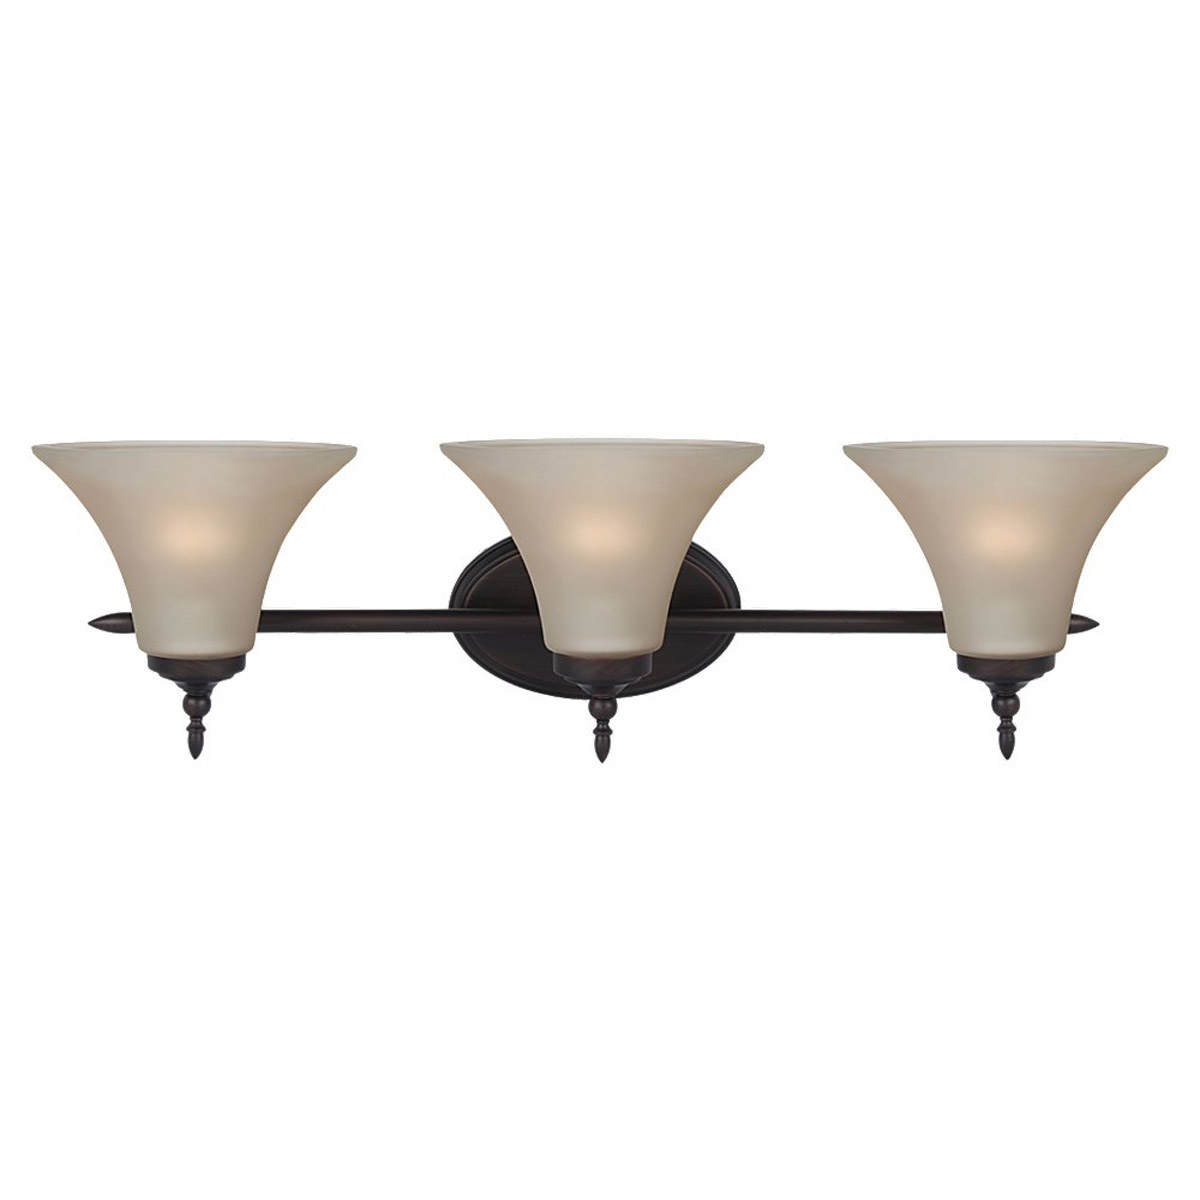 Sea Gull Lighting Montreal 3 Light Bath Vanity in Burnt Sienna 41182BLE-710